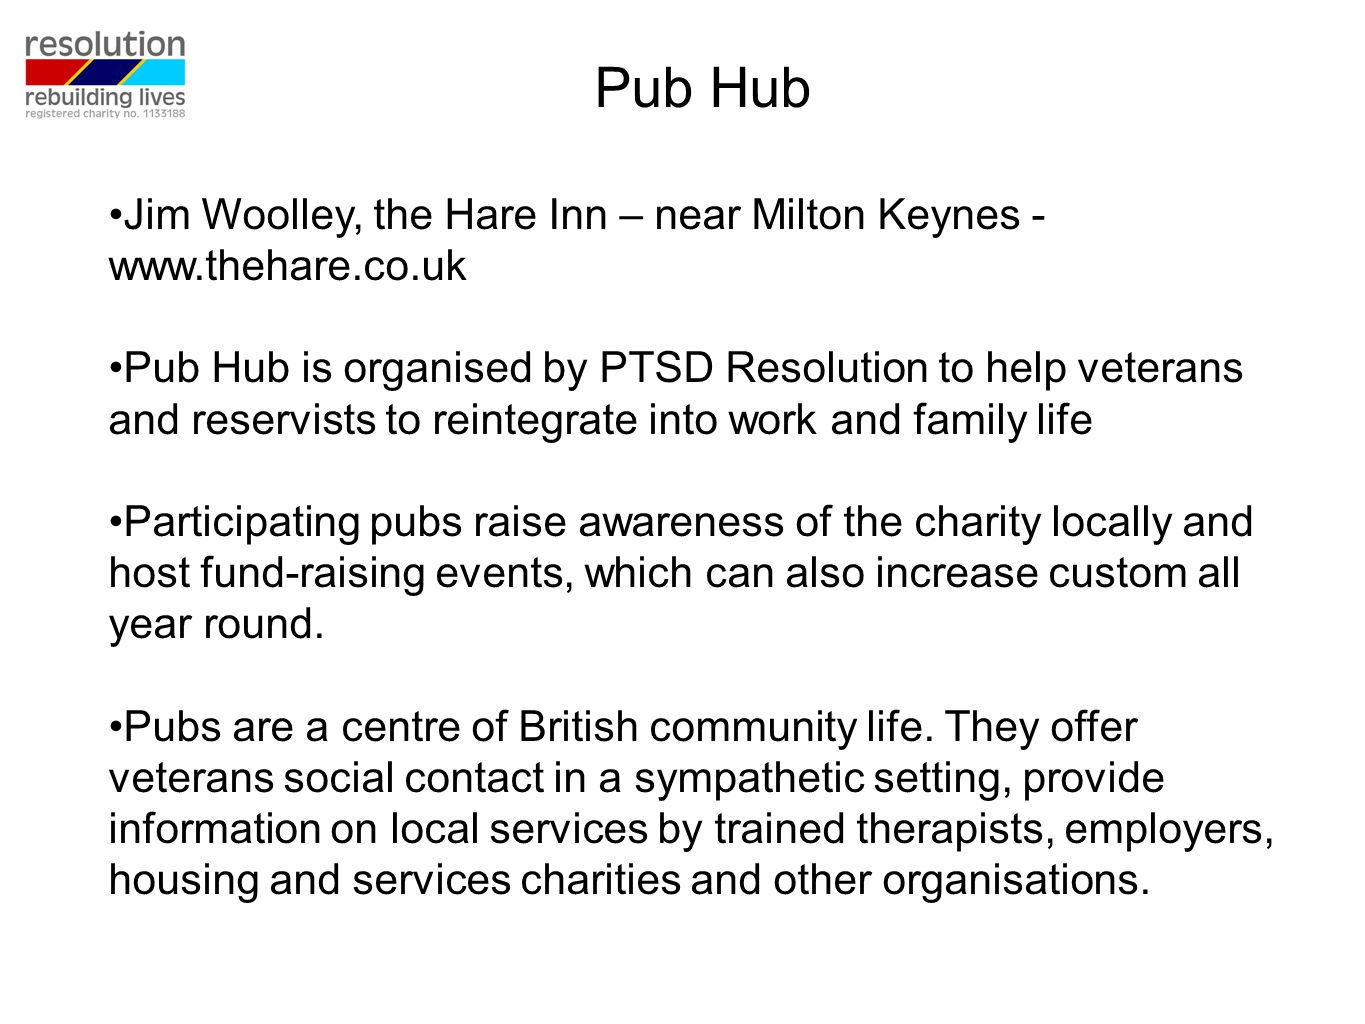 Jim Woolley, the Hare Inn – near Milton Keynes - www.thehare.co.uk Pub Hub is organised by PTSD Resolution to help veterans and reservists to reintegrate into work and family life Participating pubs raise awareness of the charity locally and host fund-raising events, which can also increase custom all year round.